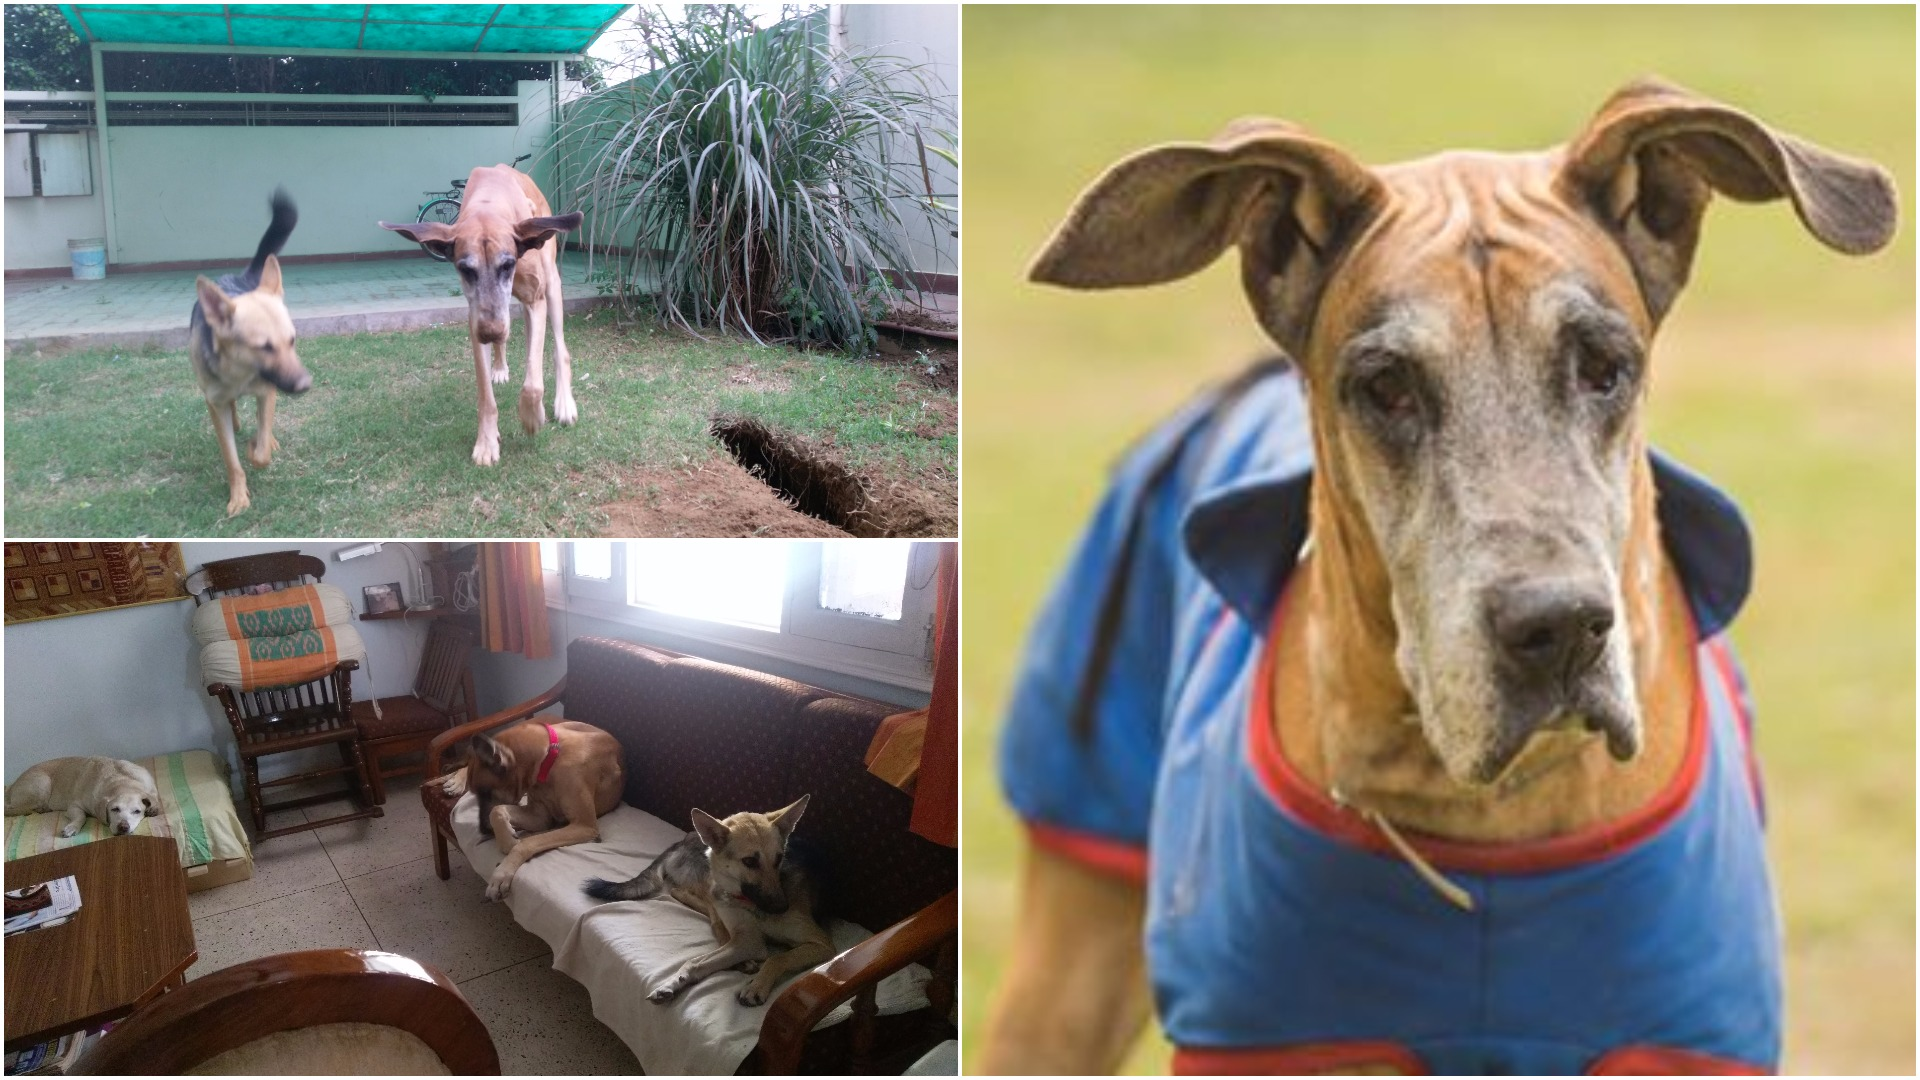 clockwise from right: Heidi at the shelter; Heidi and her housemates did not get along initially; Heidi and bano, sworn enemies, bond against a common enemy; grass.